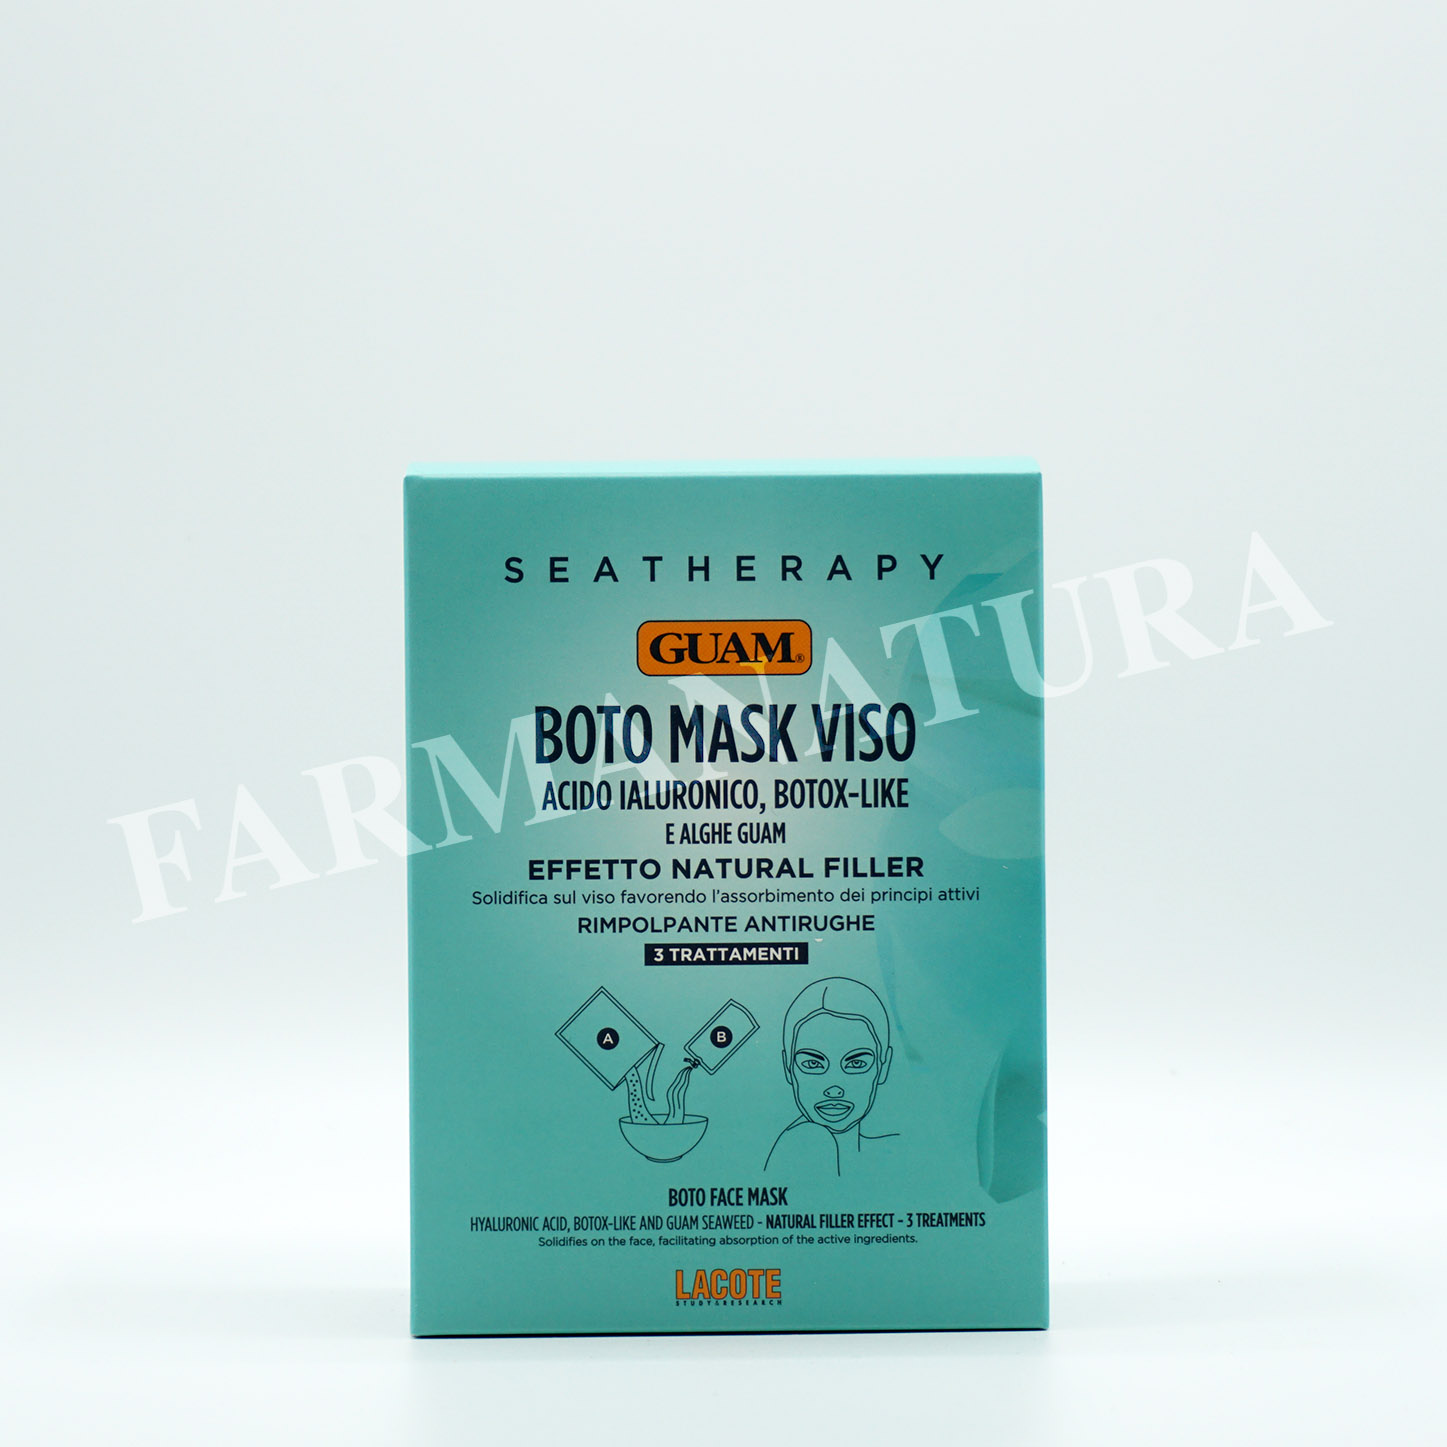 Guam Sea Therapy Boto Mask Viso